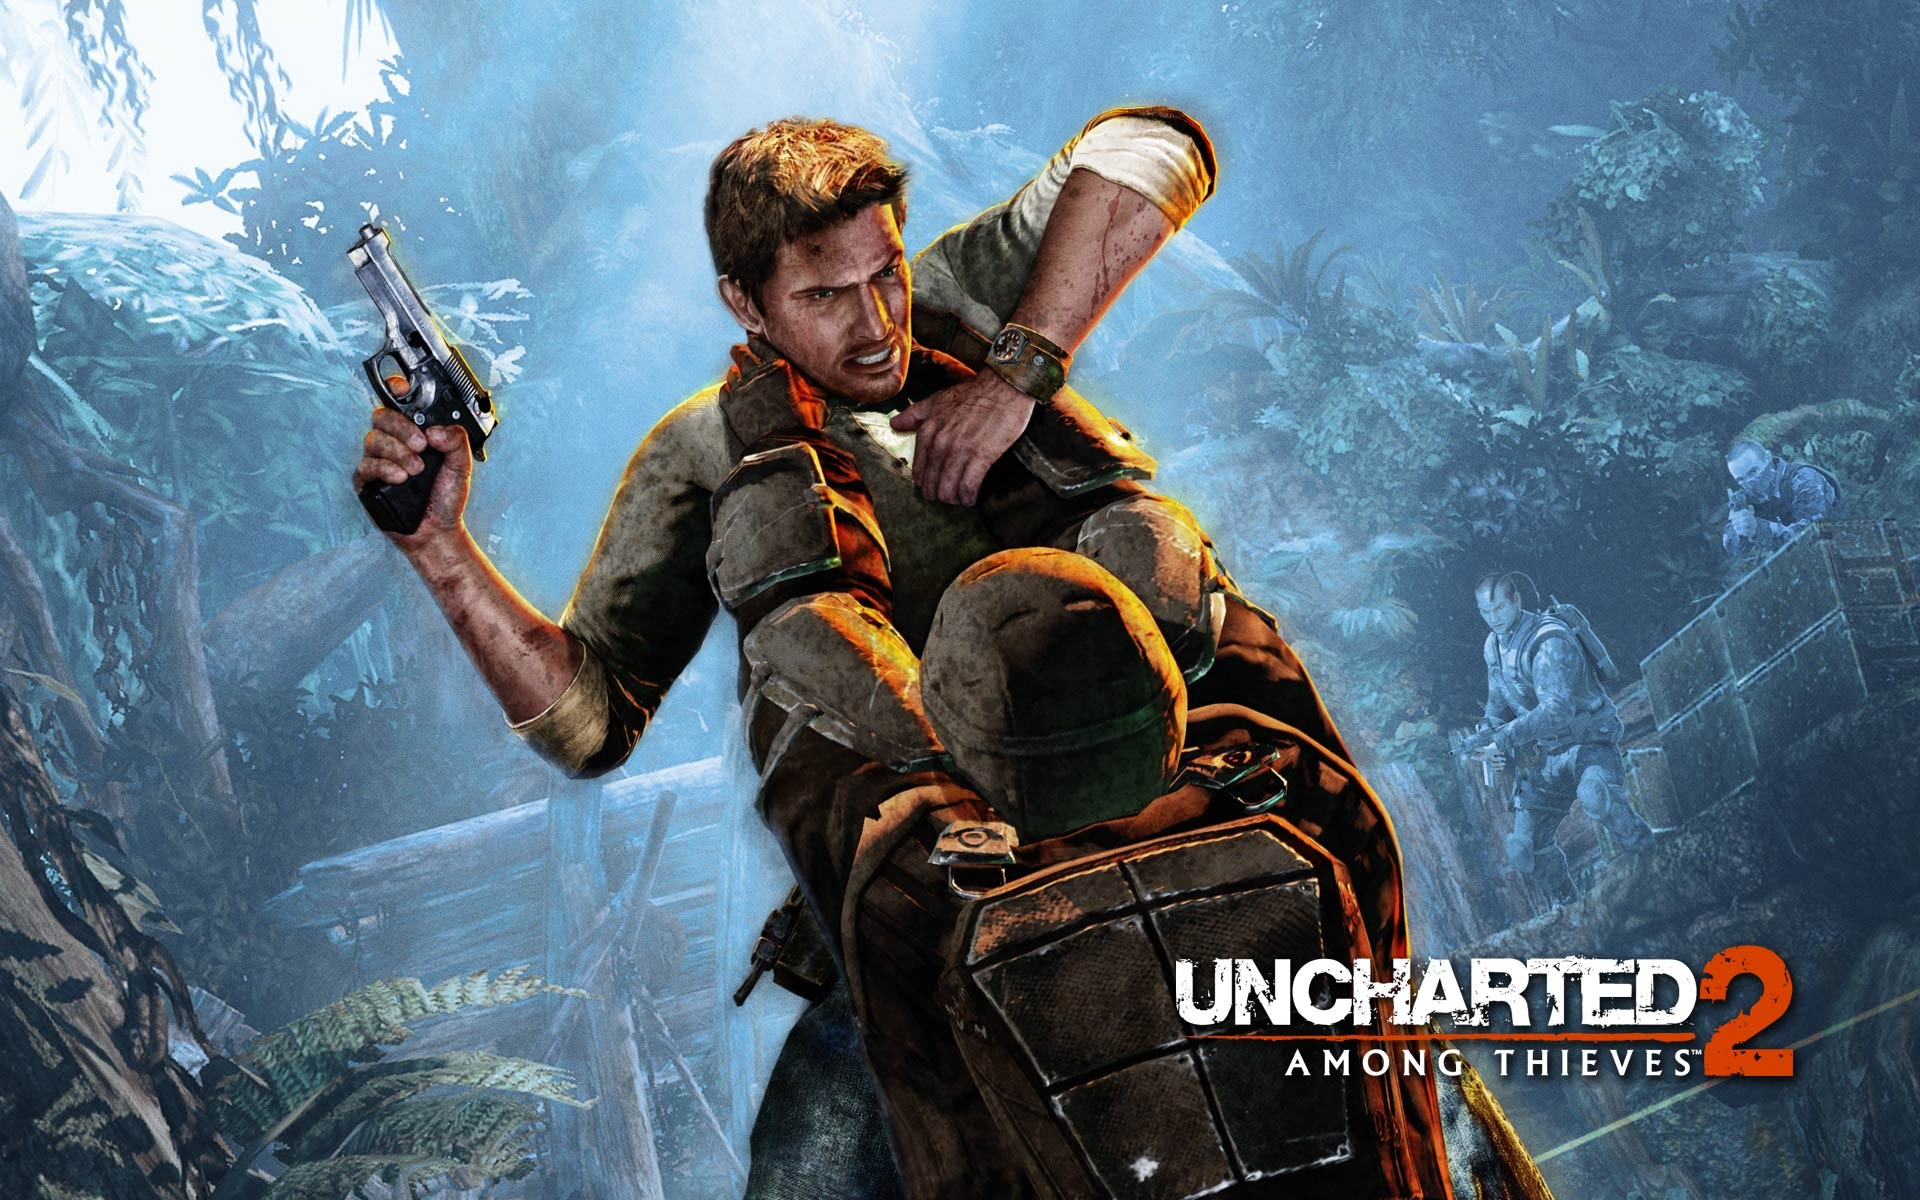 Uncharted 2 Among Thieves Wallpaper 1920x1200